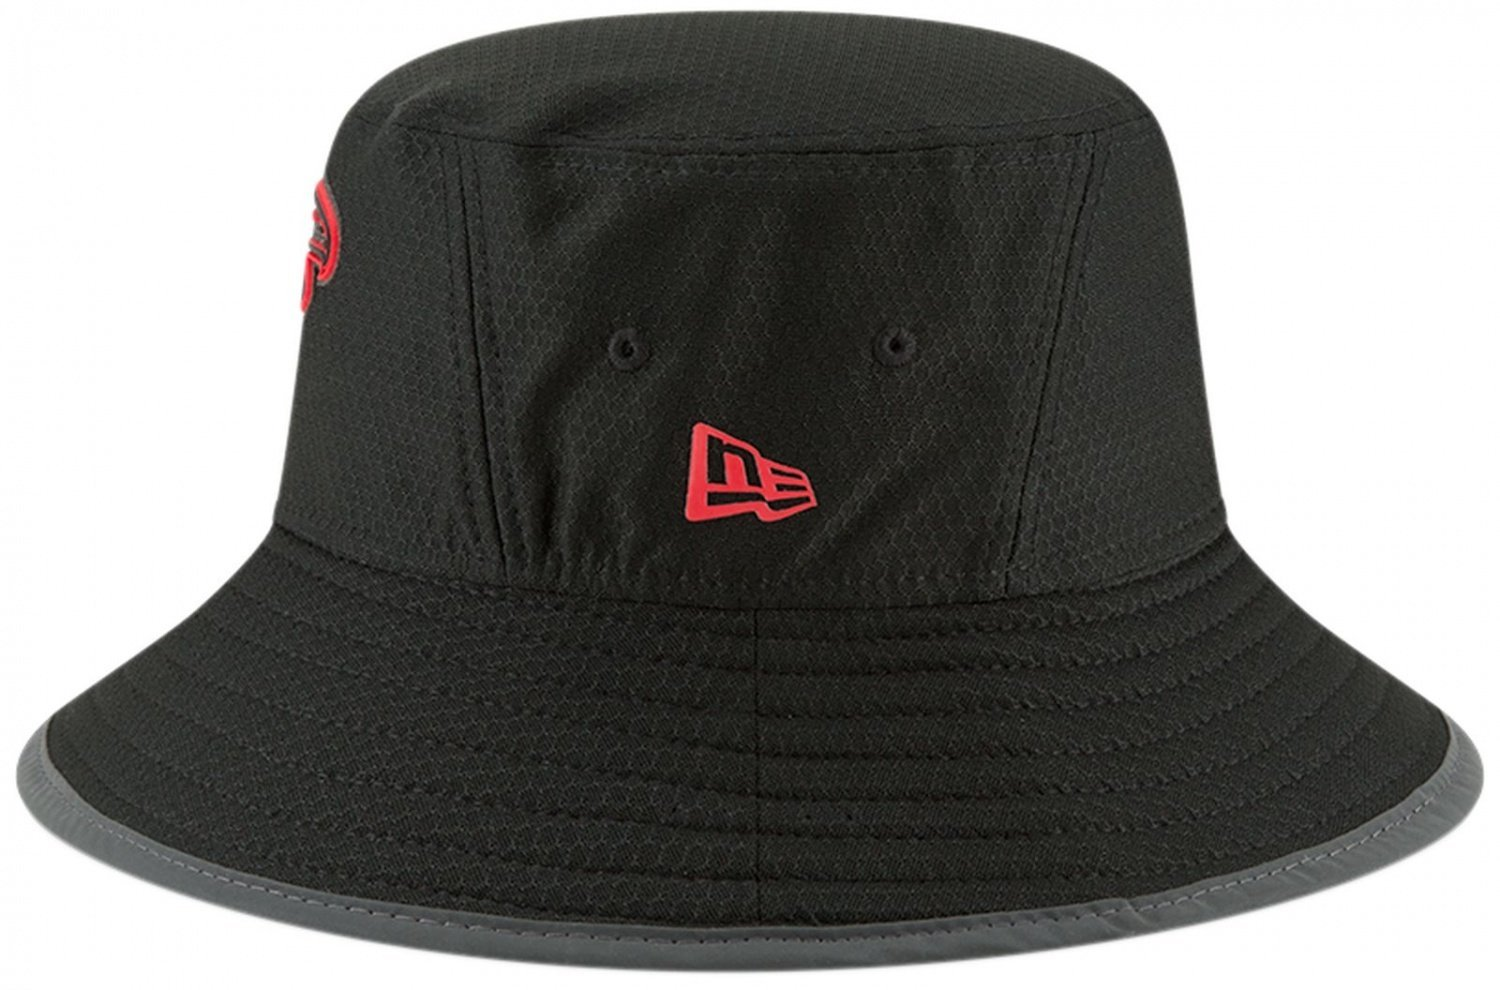 e2354054 New Era NFL 2018 Training Camp Sideline Bucket Hat Team Color